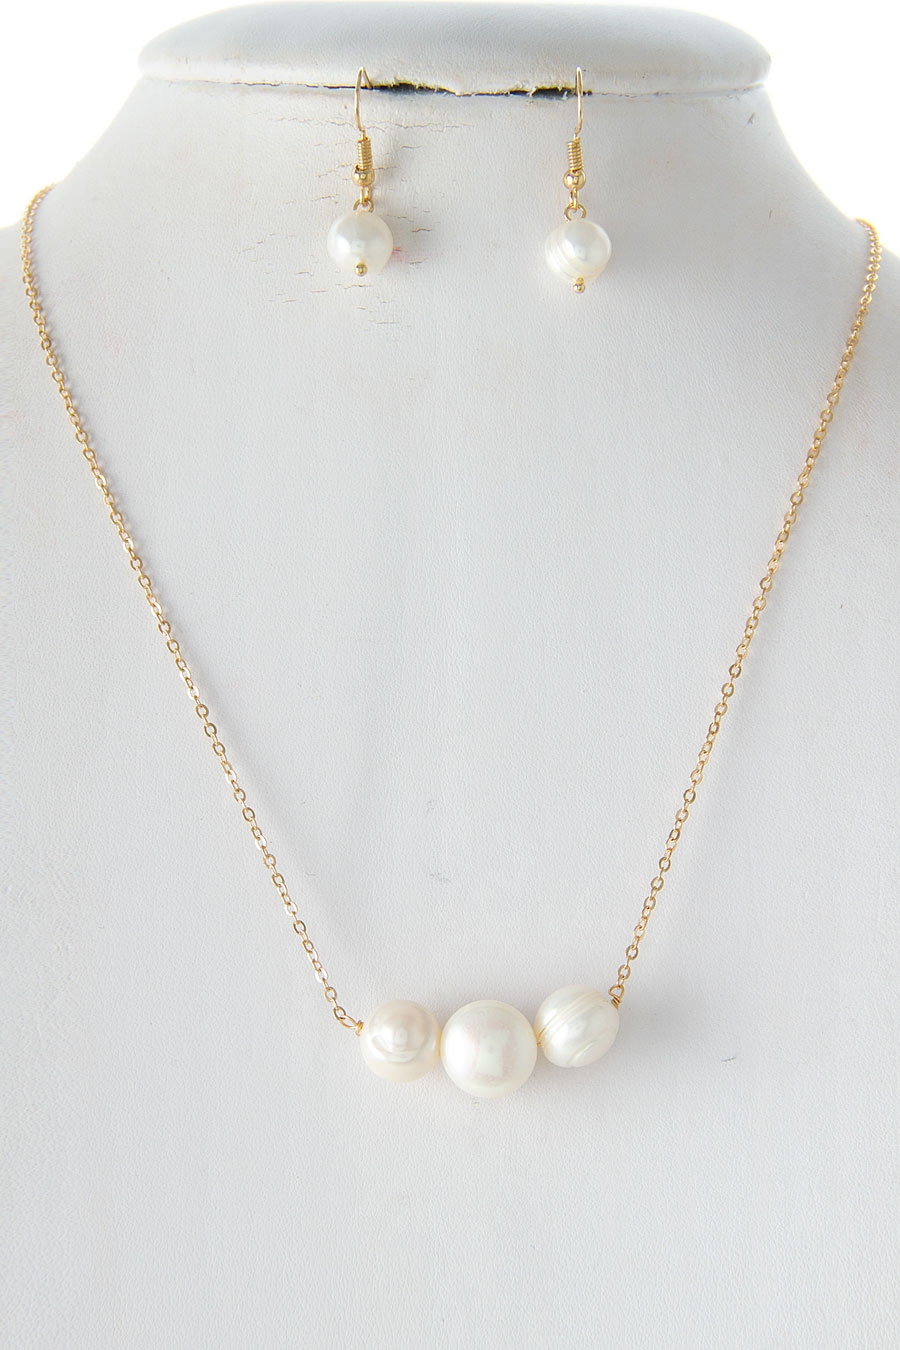 DAINTY PEARL NECKLACE SET - orangeshine.com